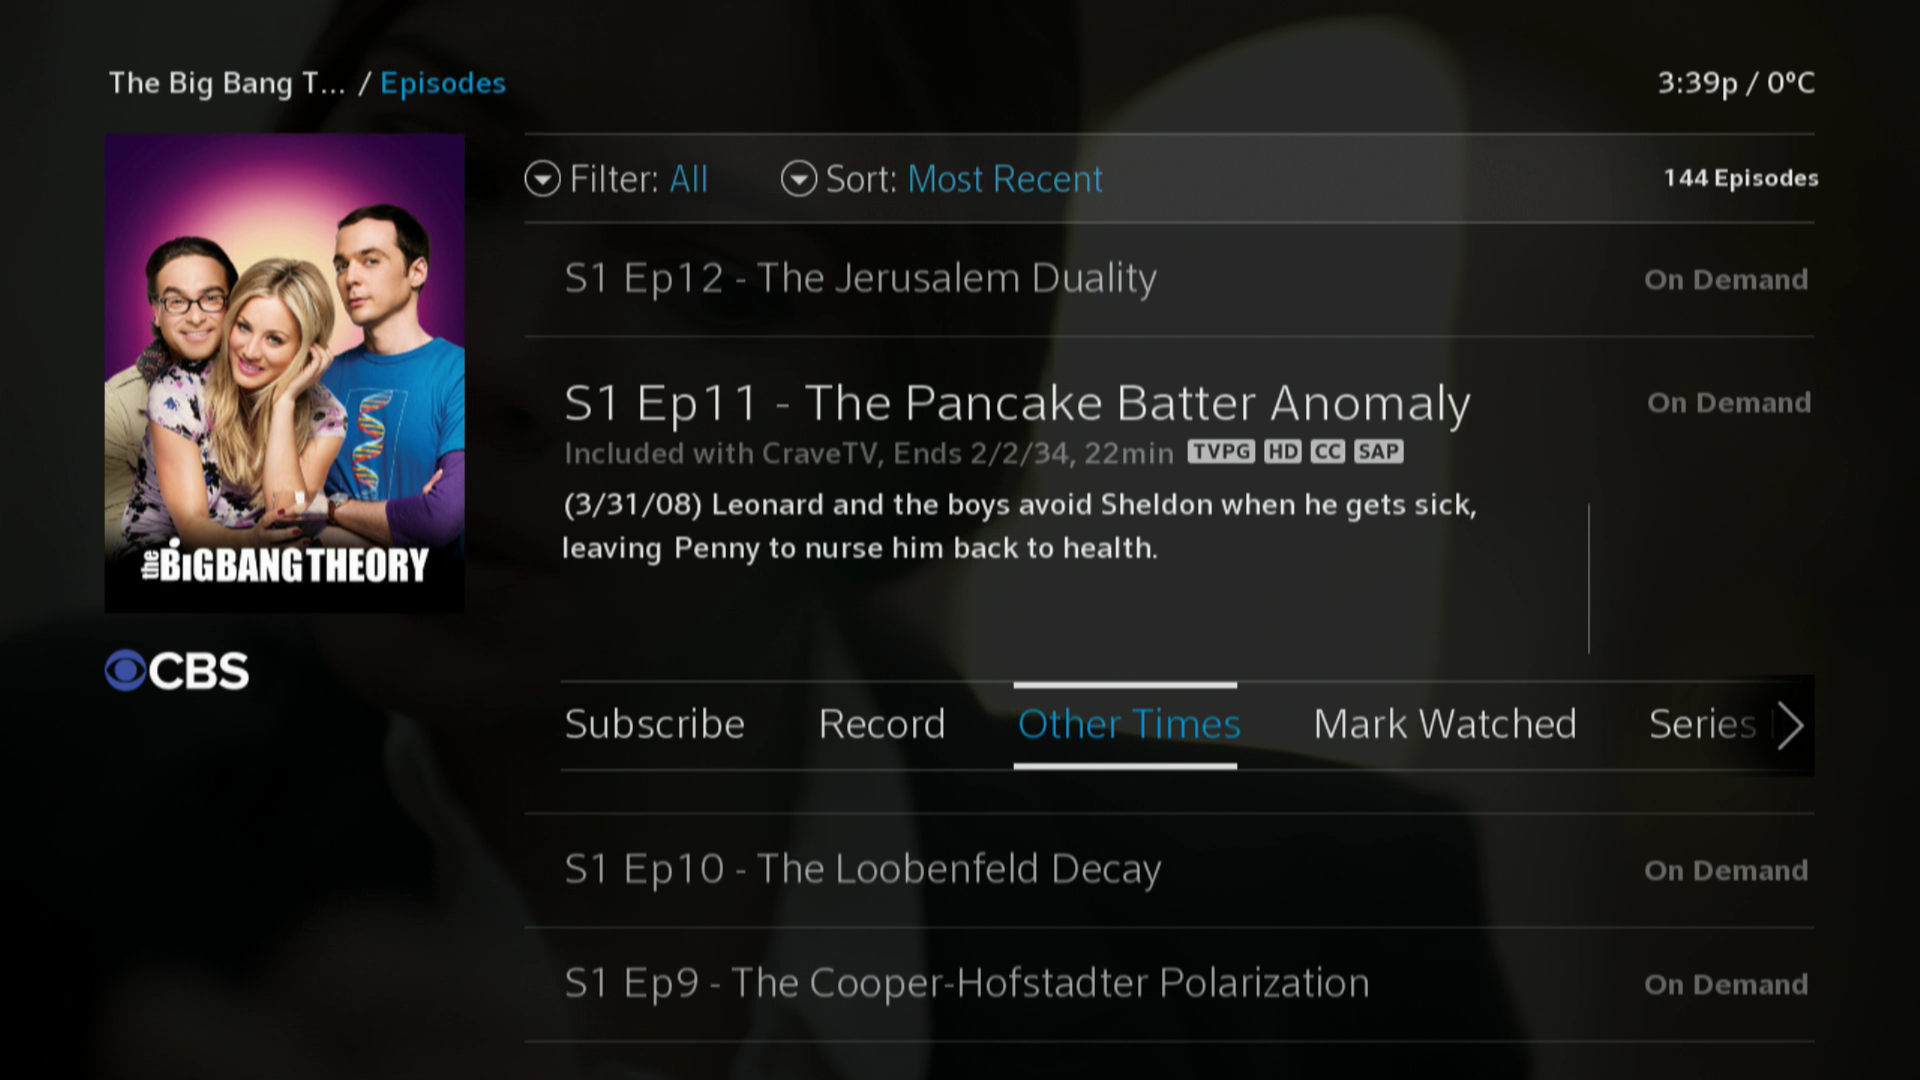 BlueCurve TV > Episode Guide > Other Times